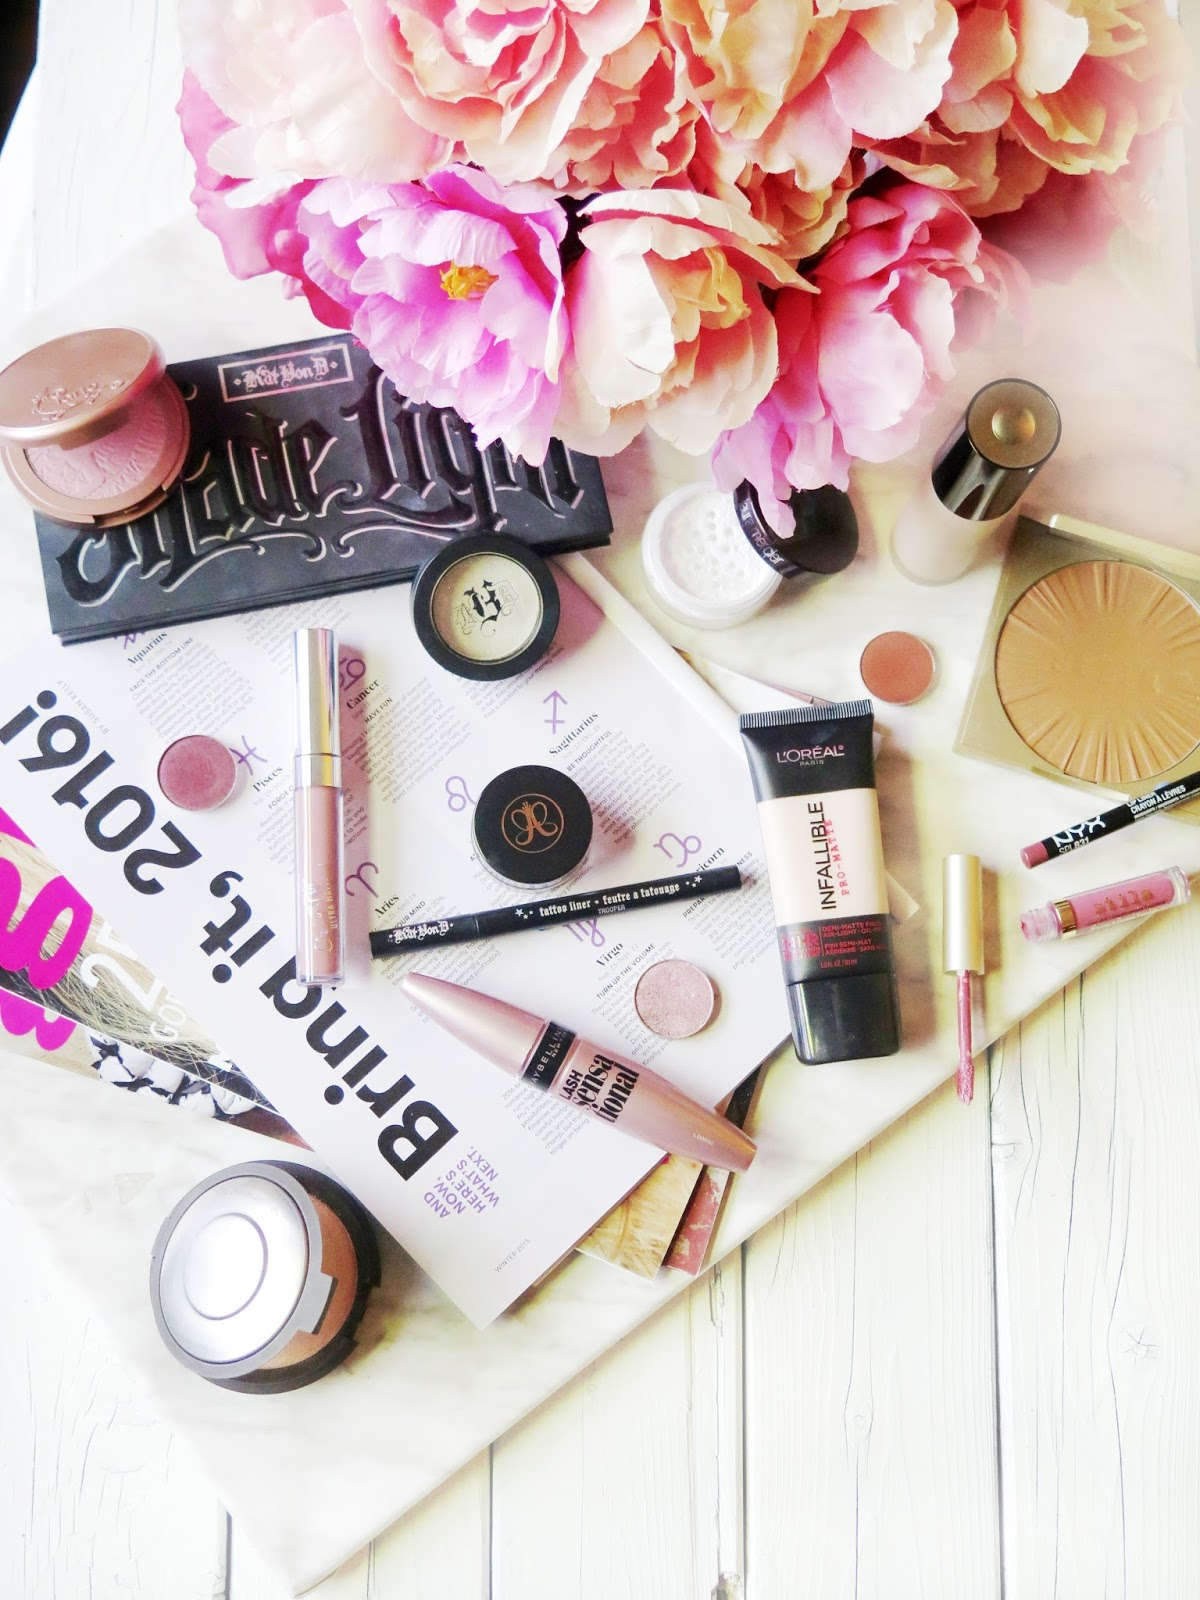 The Top 15 Beauty Products Of 2015 | My Most Loved & Most Used Products | labellesirene.ca